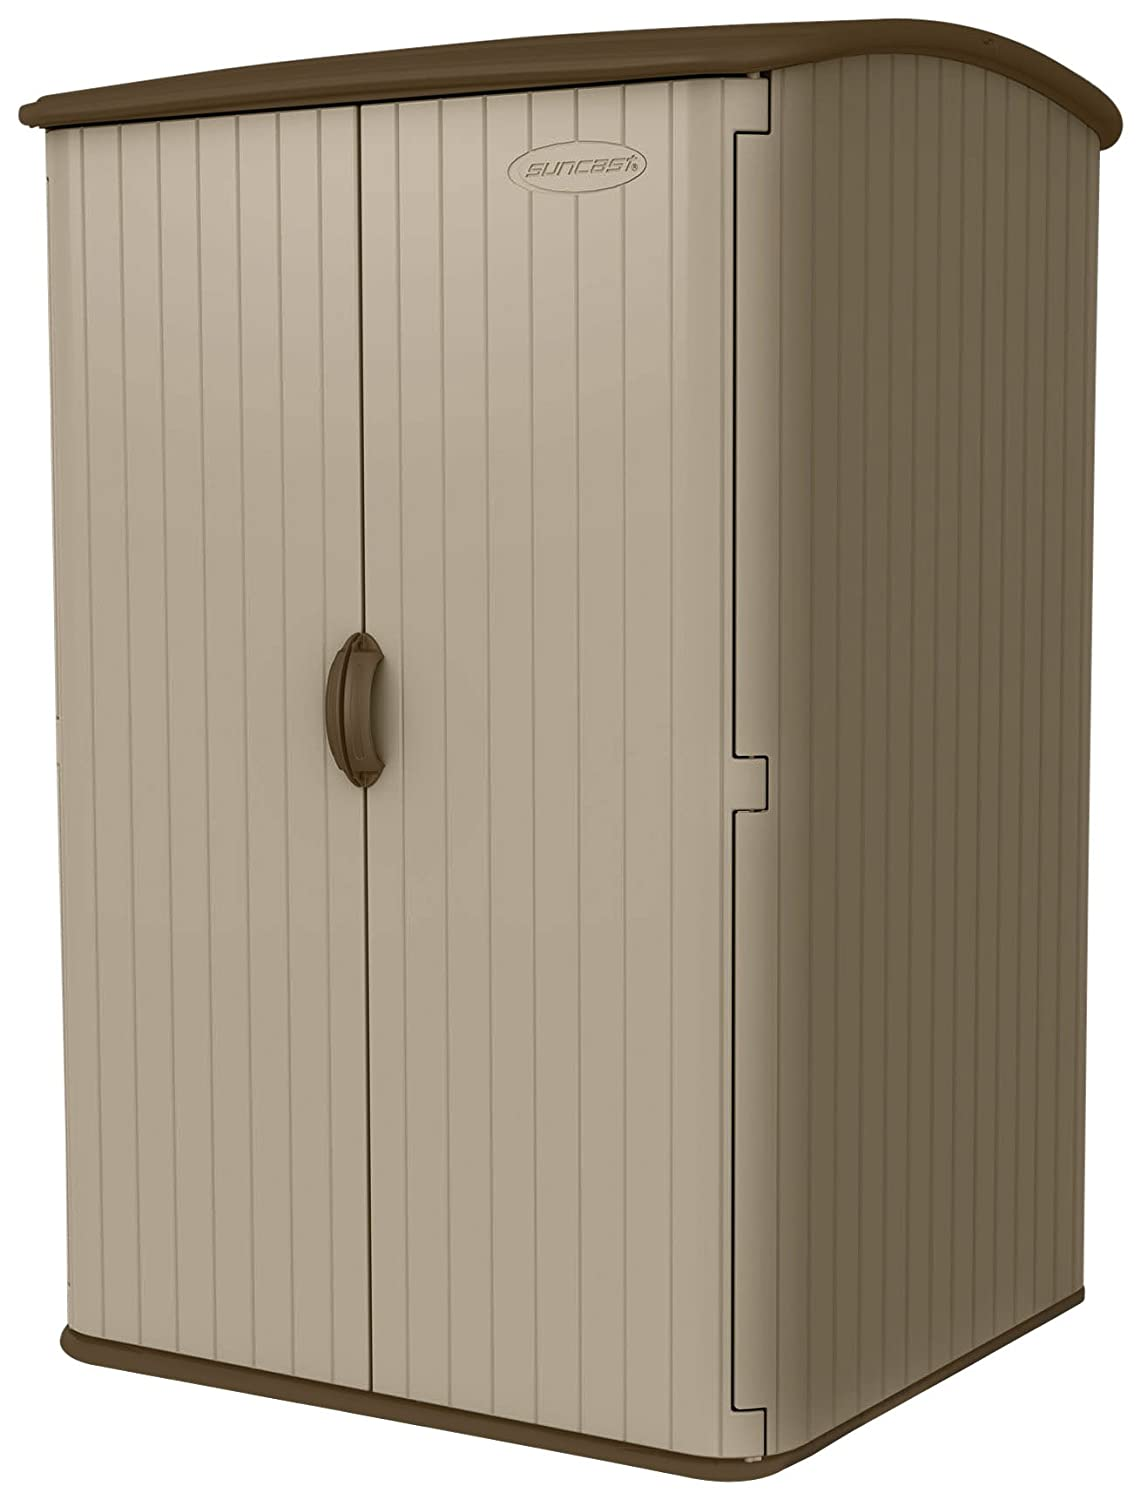 Etonnant Amazon.com : Suncast BMS6500 98 Cubic Foot Vertical Blowmolded Shed : Storage  Sheds : Garden U0026 Outdoor